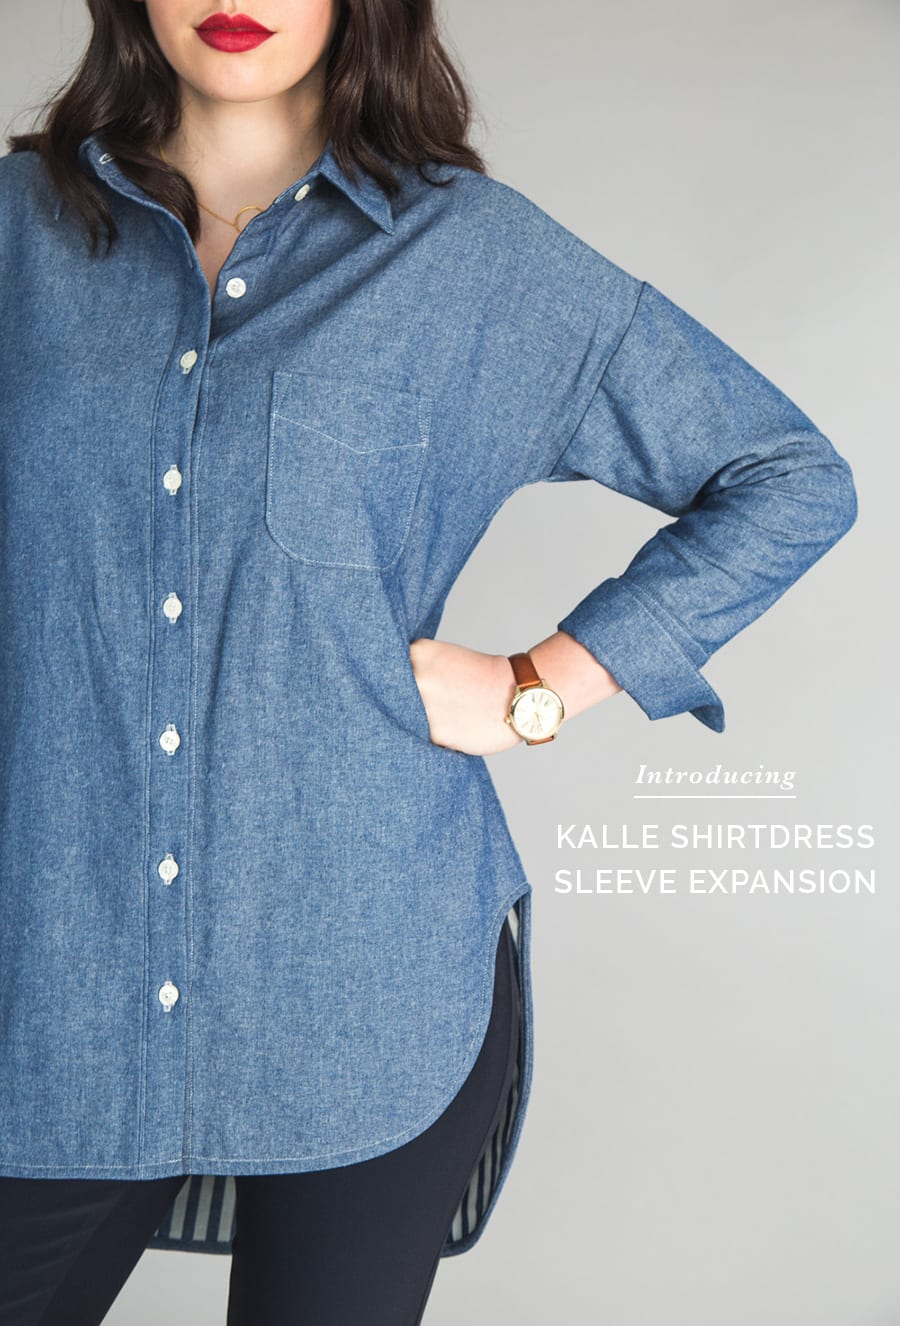 Sleeve Pattern Expansion for Kalle Shirtdress Pattern // Closet Case Patterns